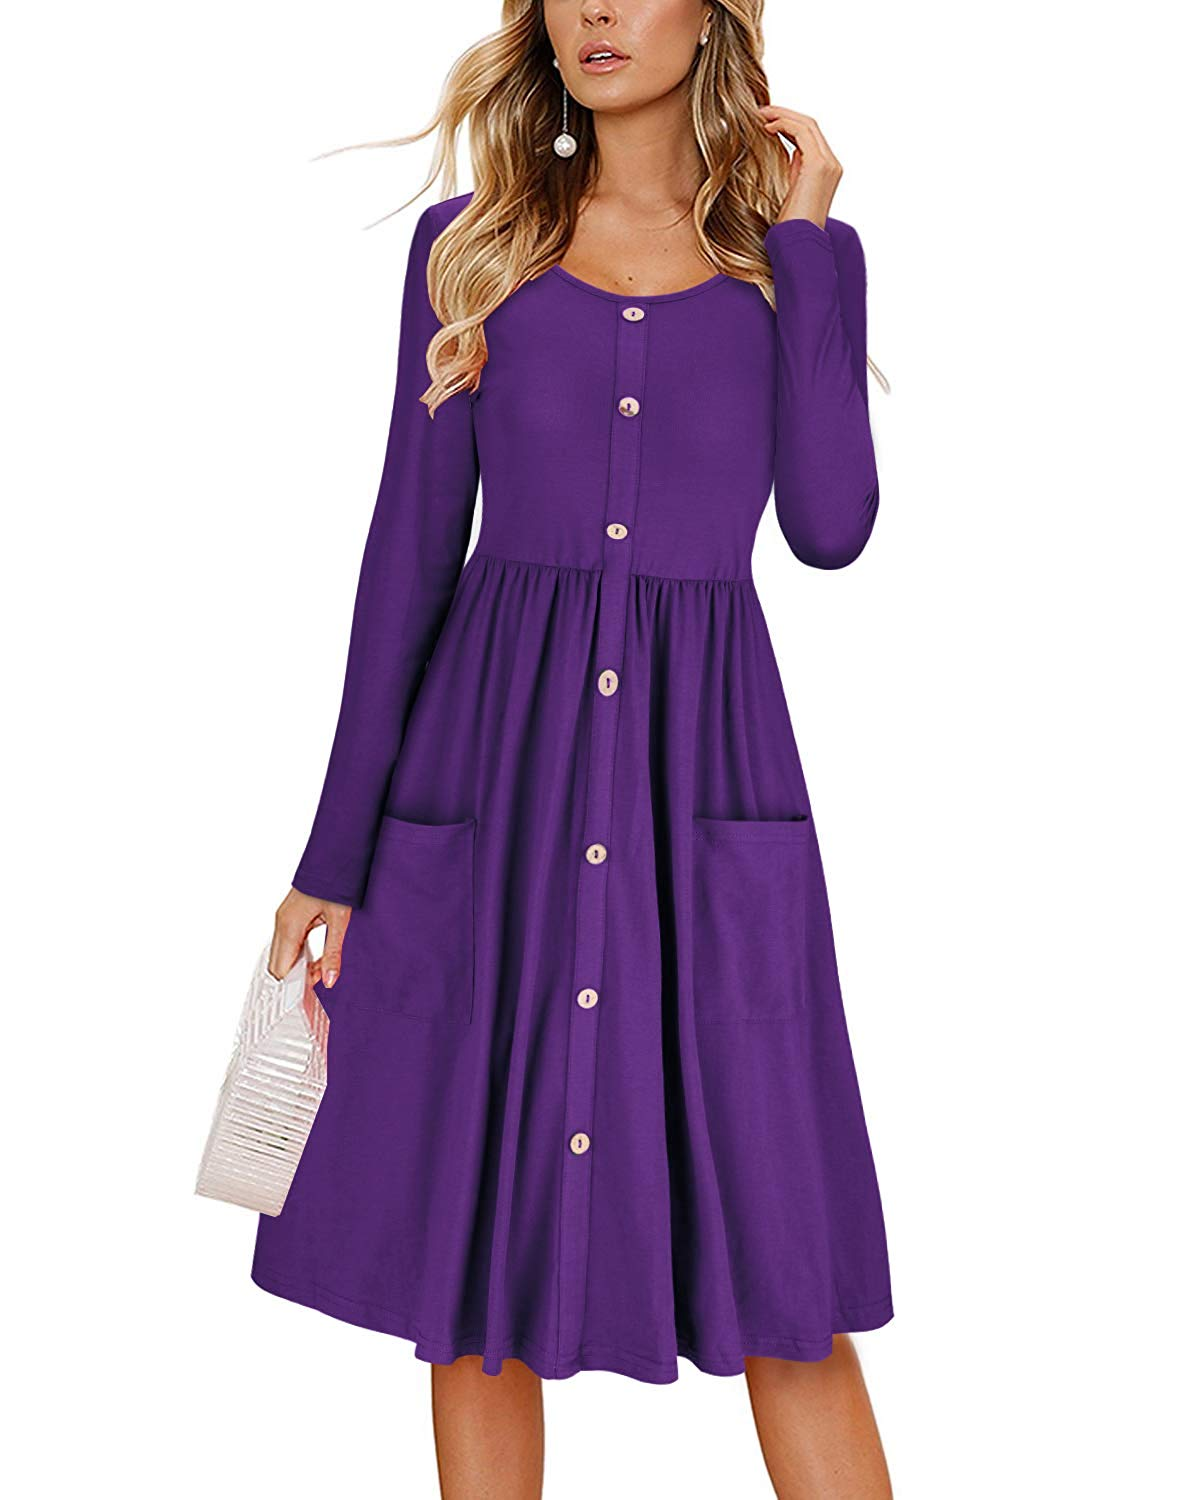 DAILYHAUTE Women's dress PLUM / S Haute Edition Women's Long Sleeve Button Down Dress with Pockets